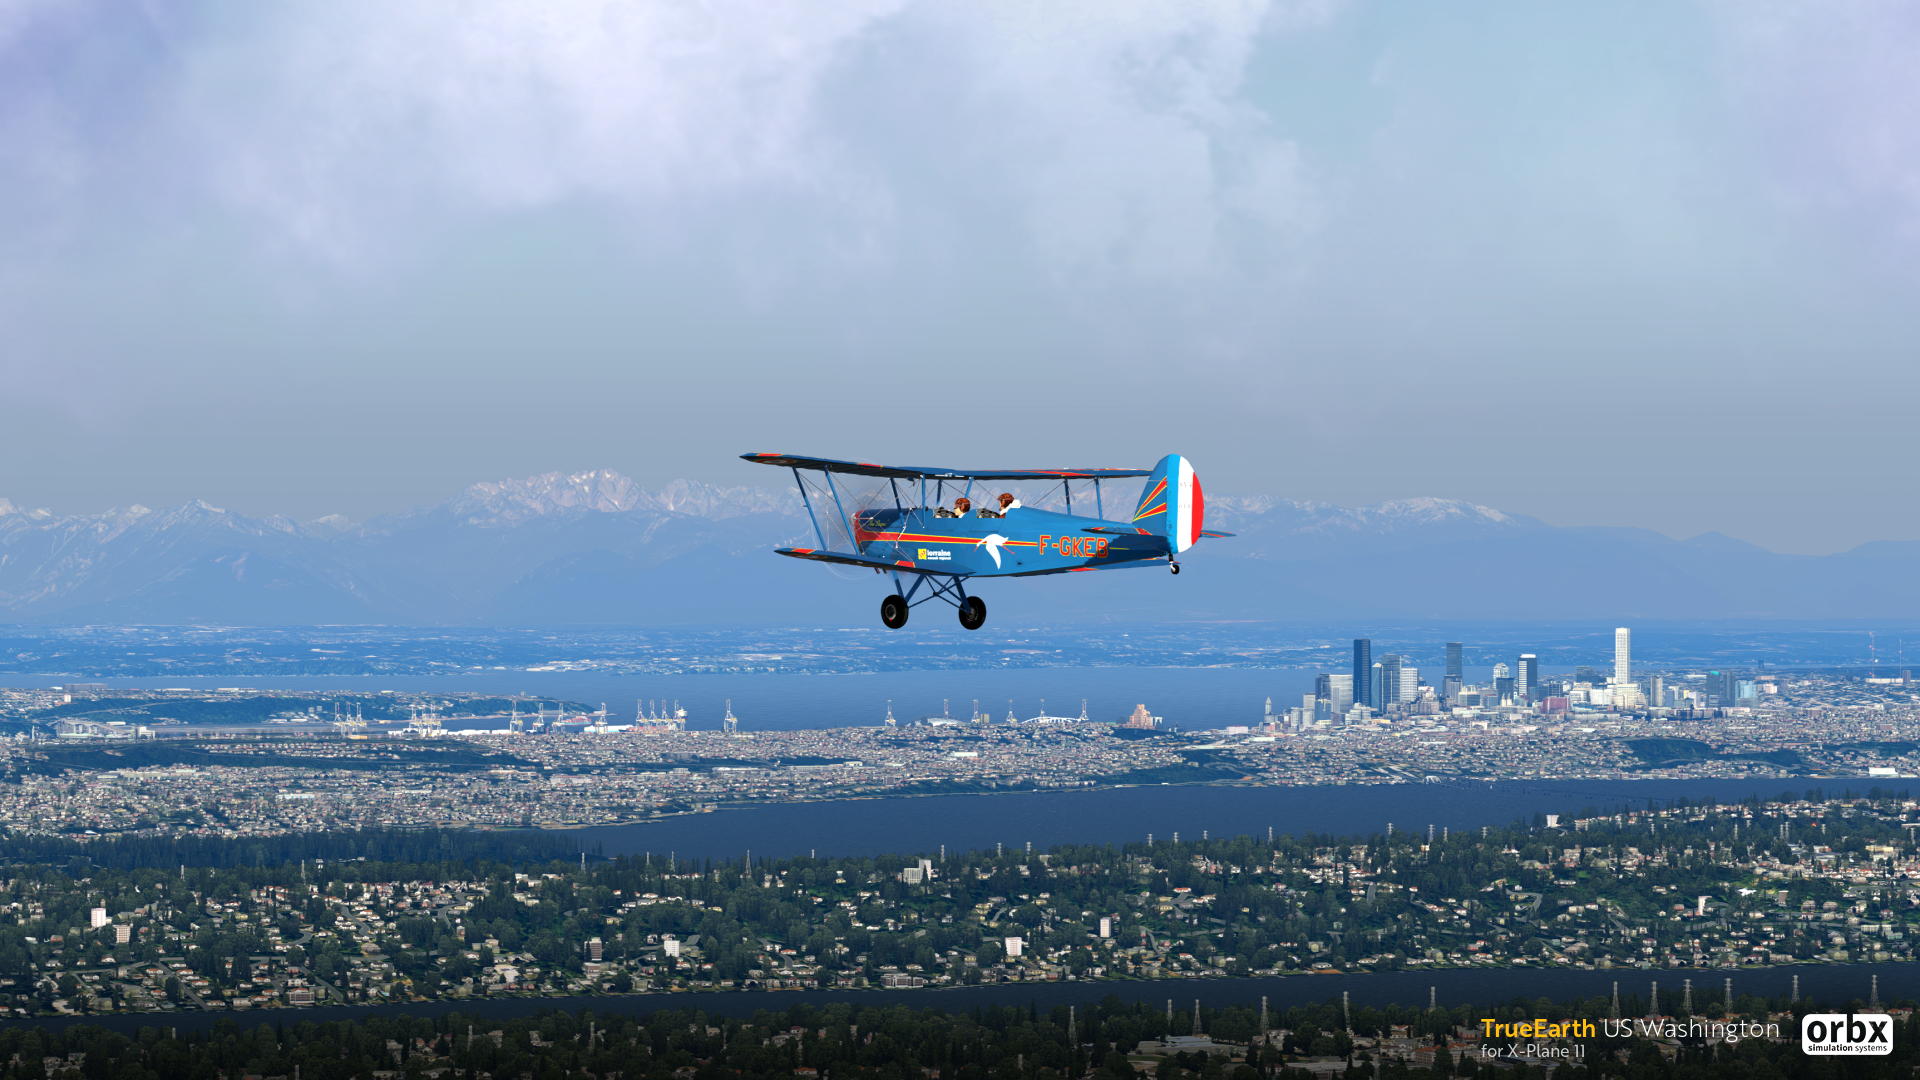 TrueEarth US Washington HD - X-Plane 11